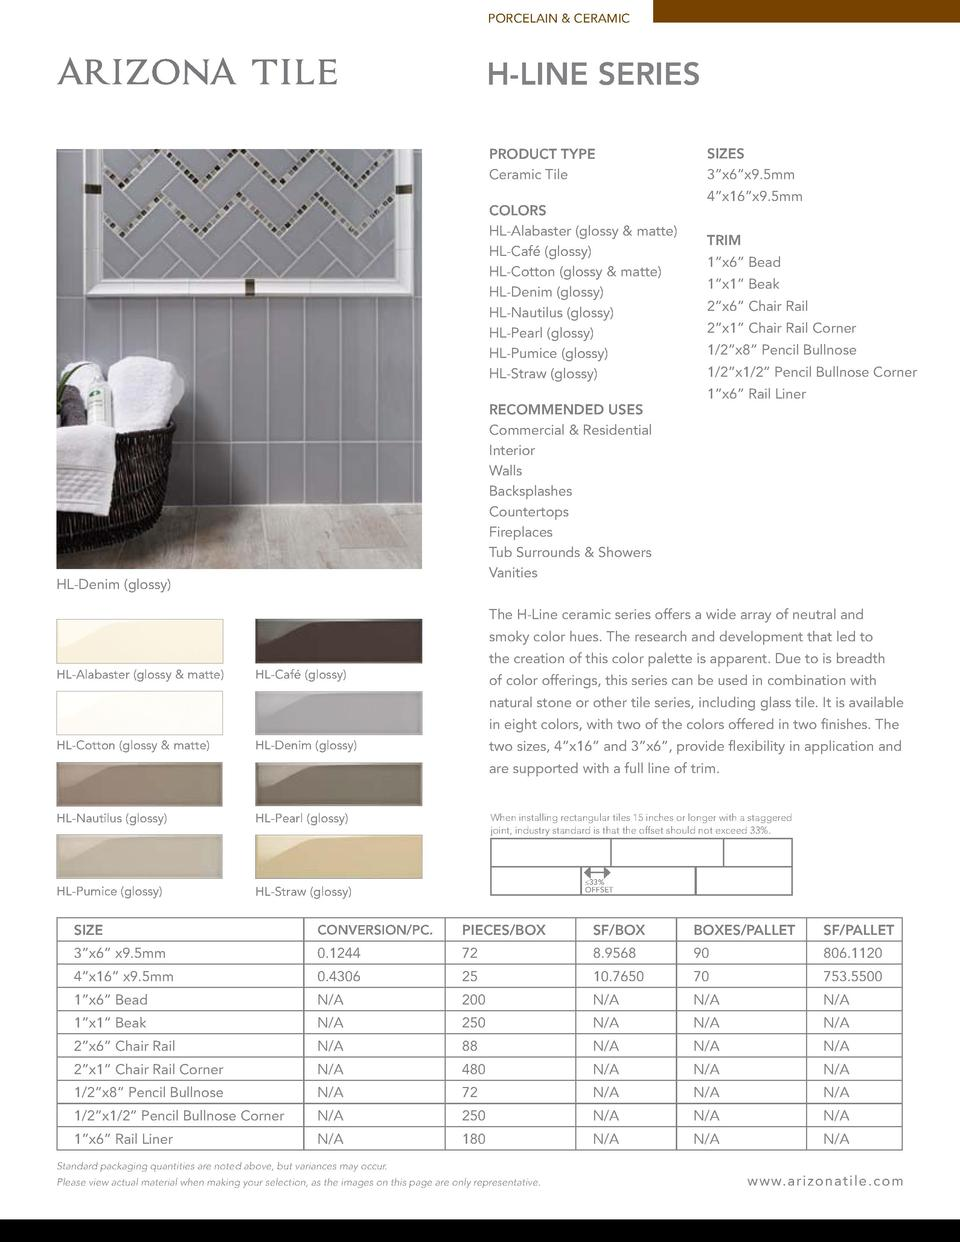 PORCELAIN   CERAMIC  H-LINE SERIES PRODUCT TYPE Ceramic Tile COLORS HL-Alabaster  glossy   matte  HL-Caf    glossy  HL-Cot...